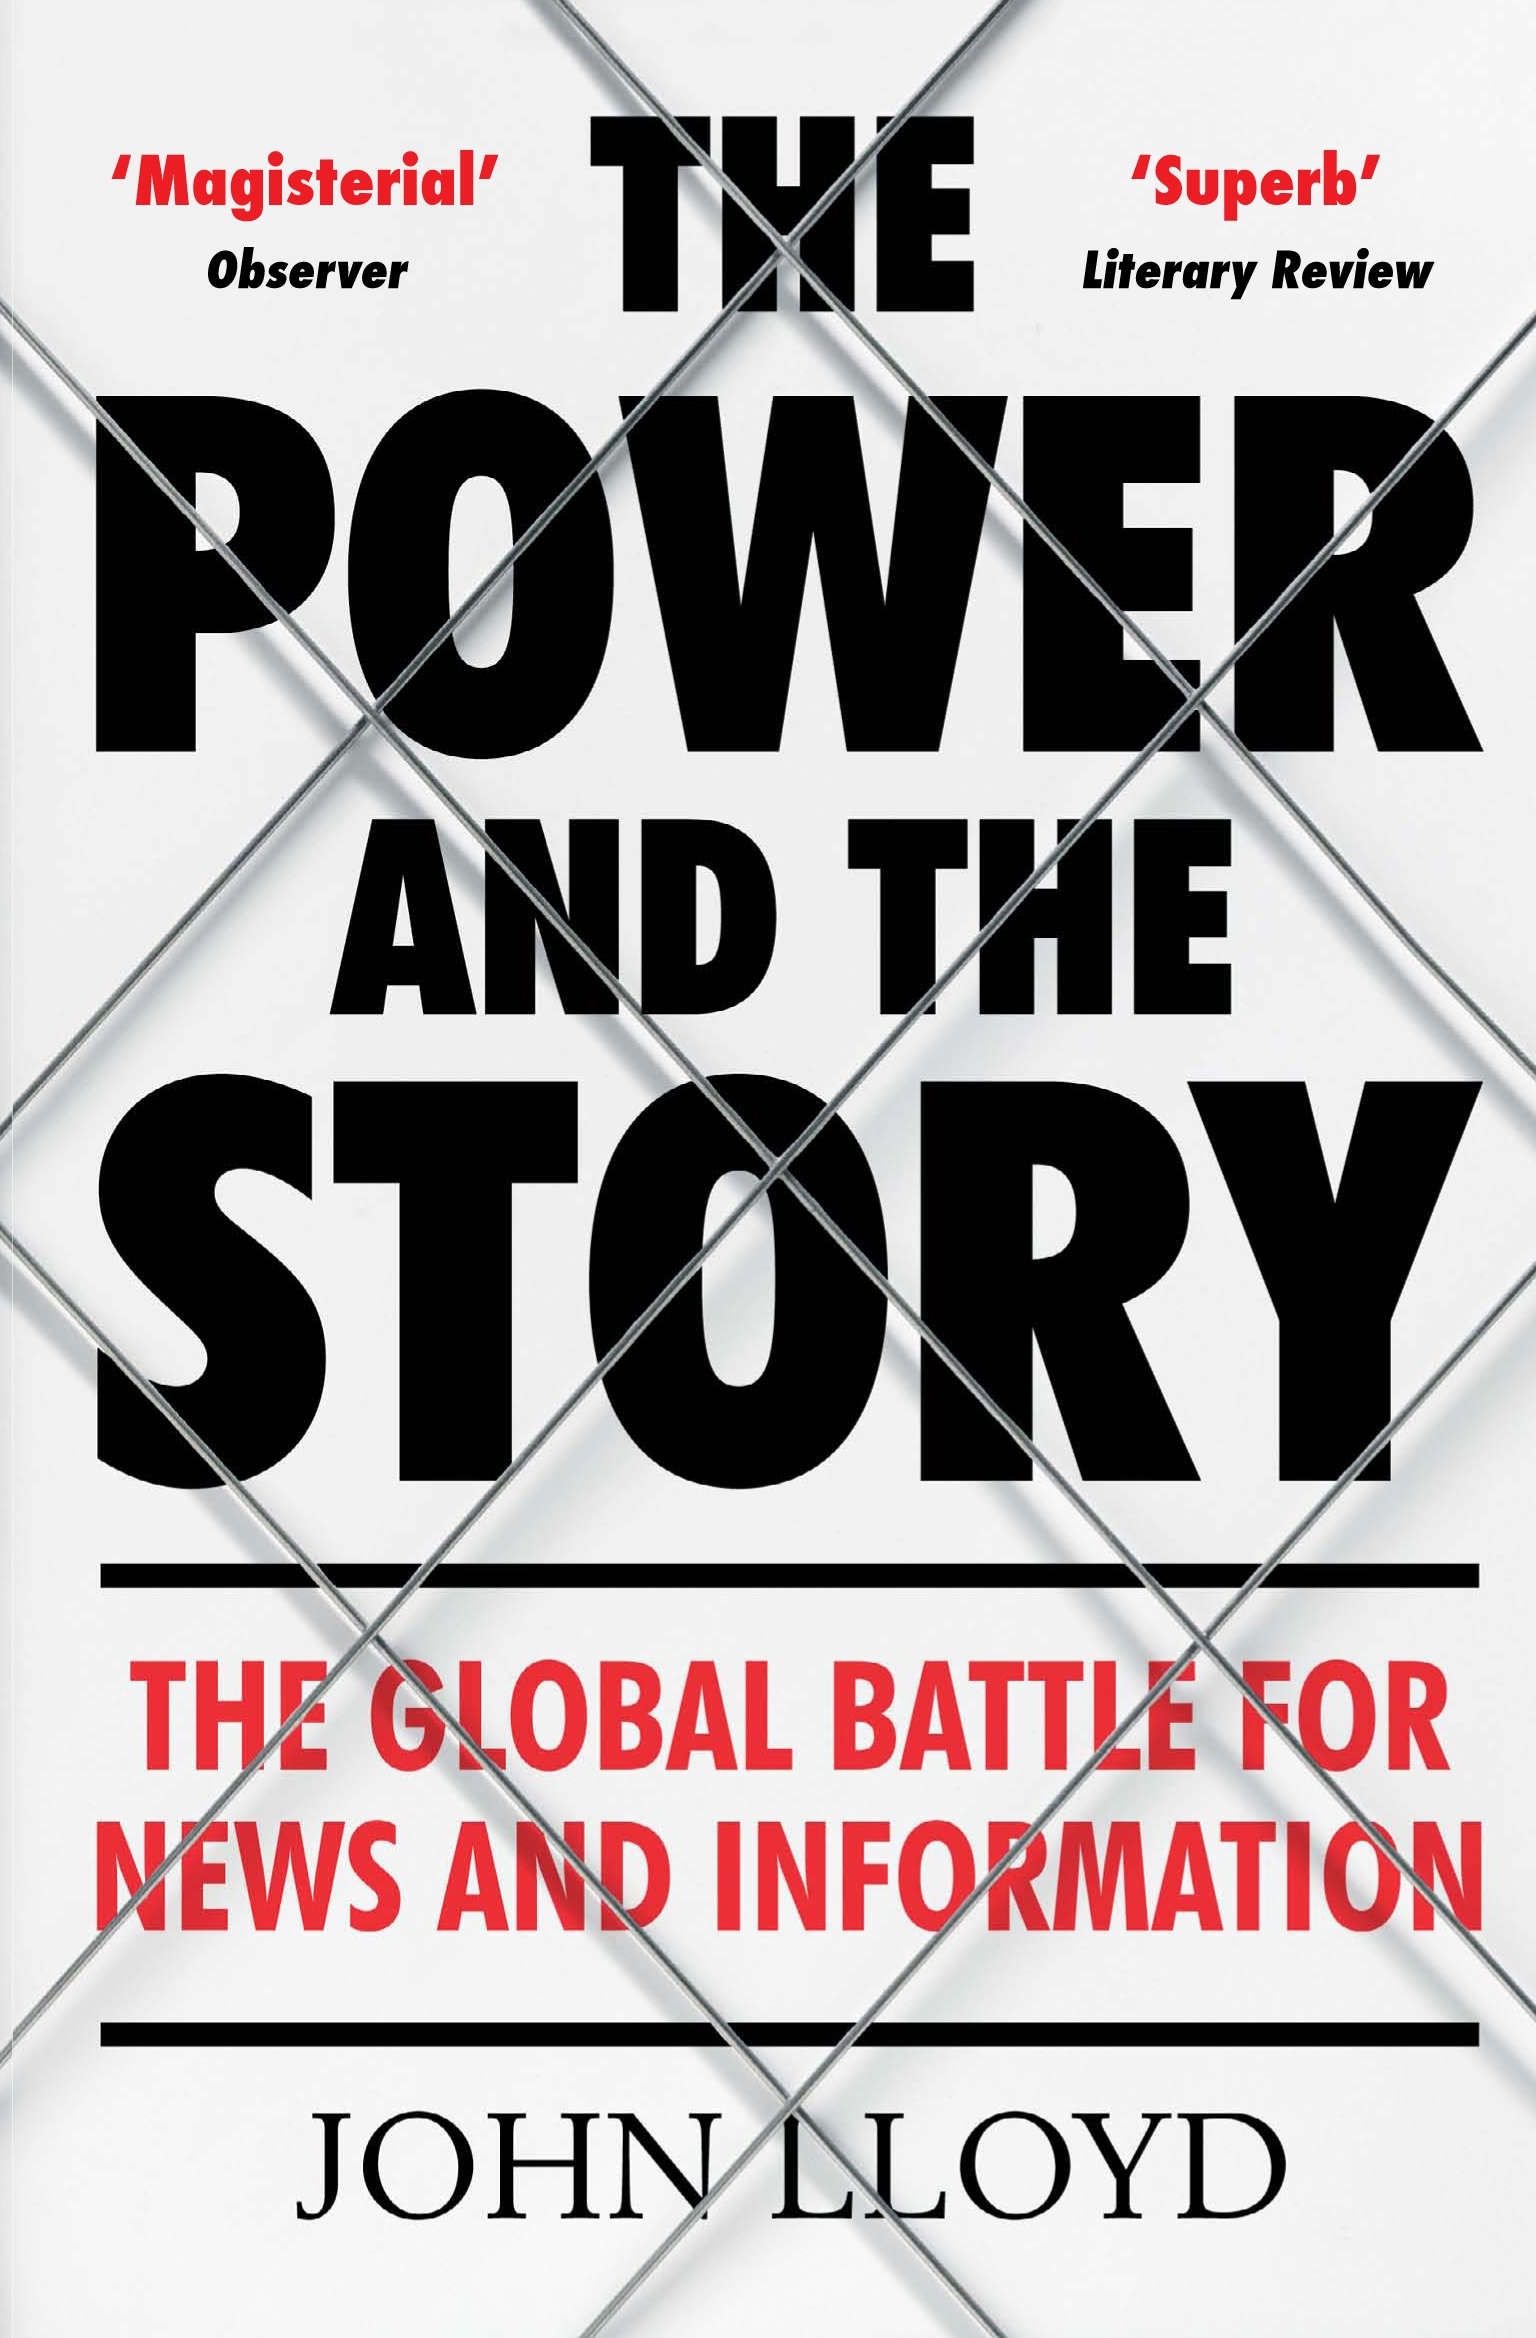 Download Ebook The Power and the Story by John Lloyd Pdf